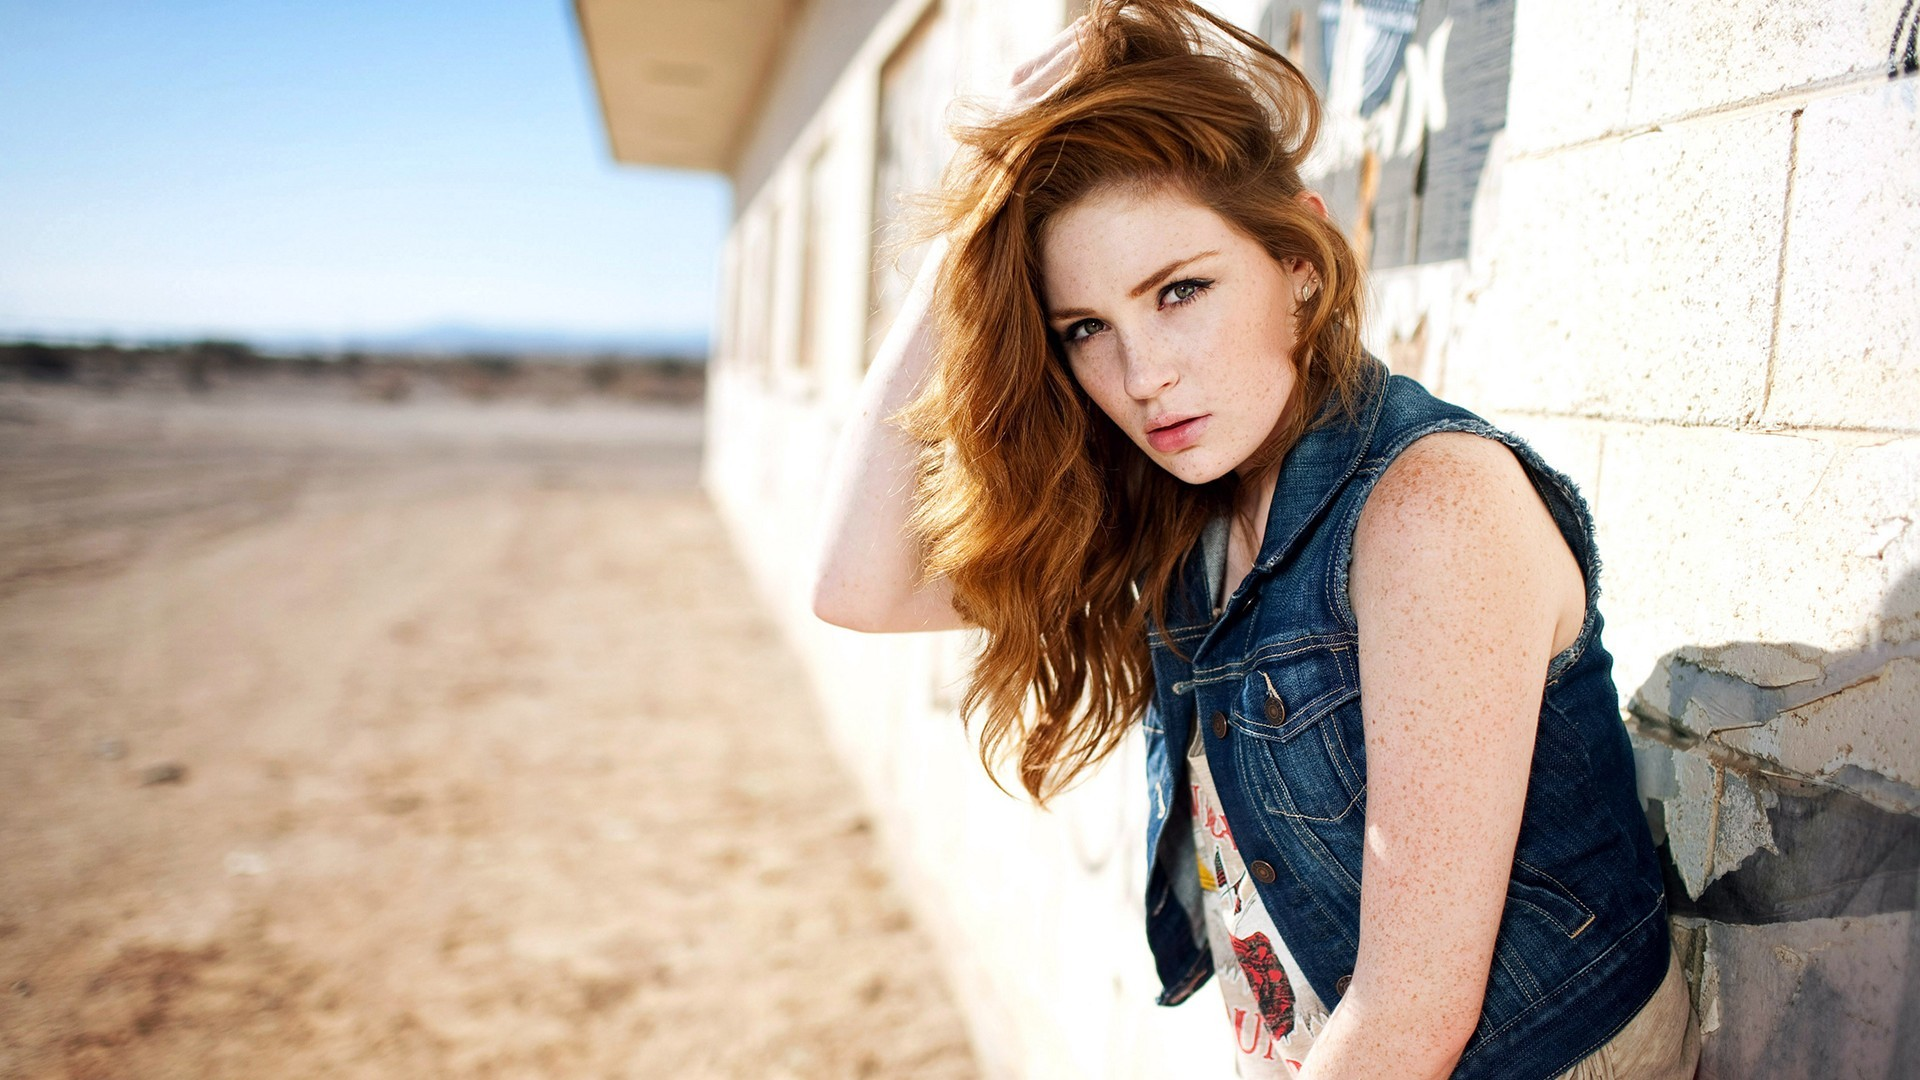 545e10f0 Gorgeous Redhead Wallpaper (65+ images)